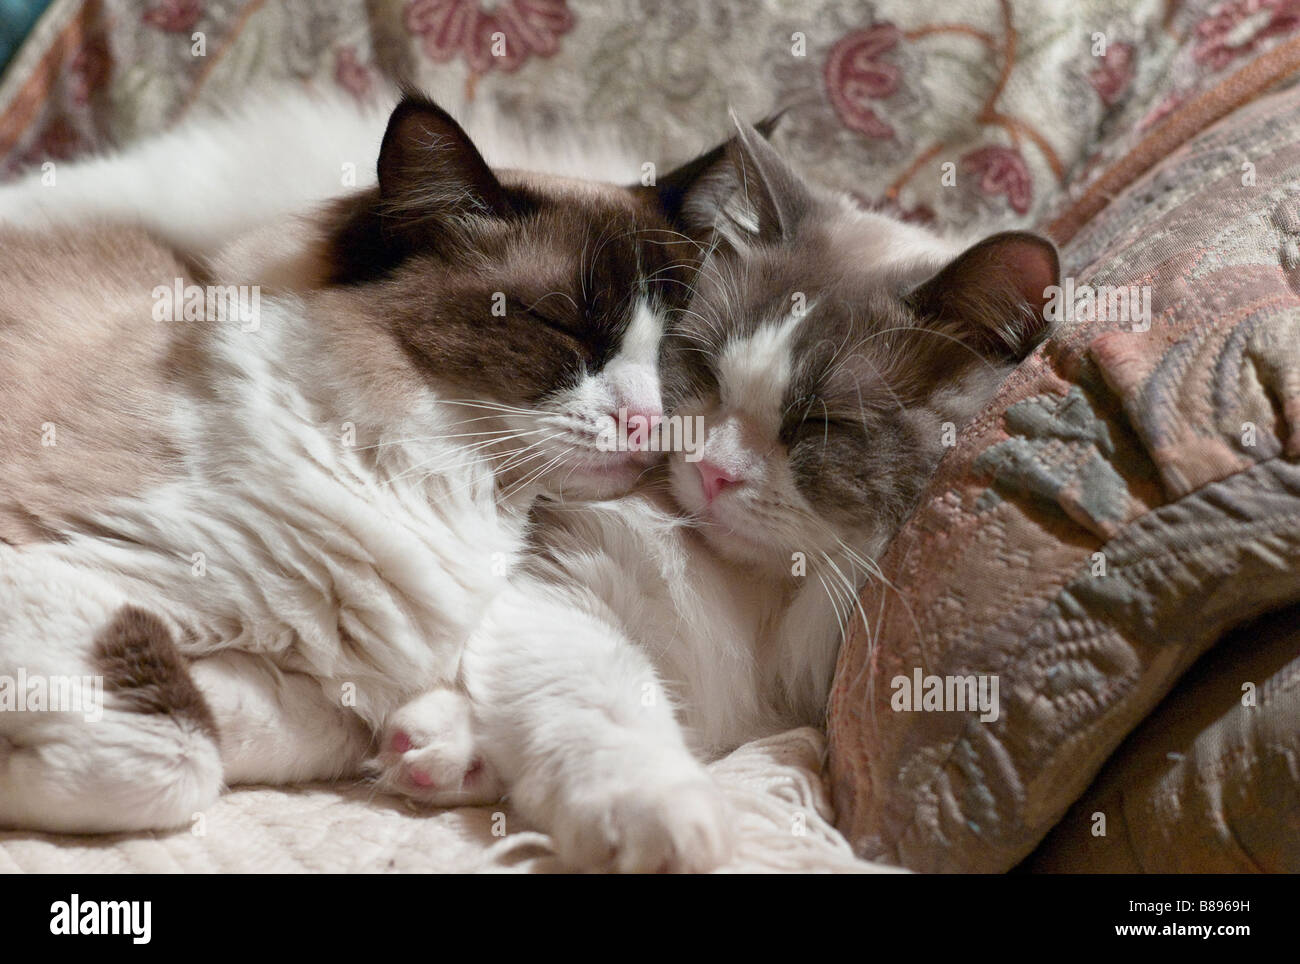 Two young Ragdoll cats sleeping together cheek to cheek - Stock Image